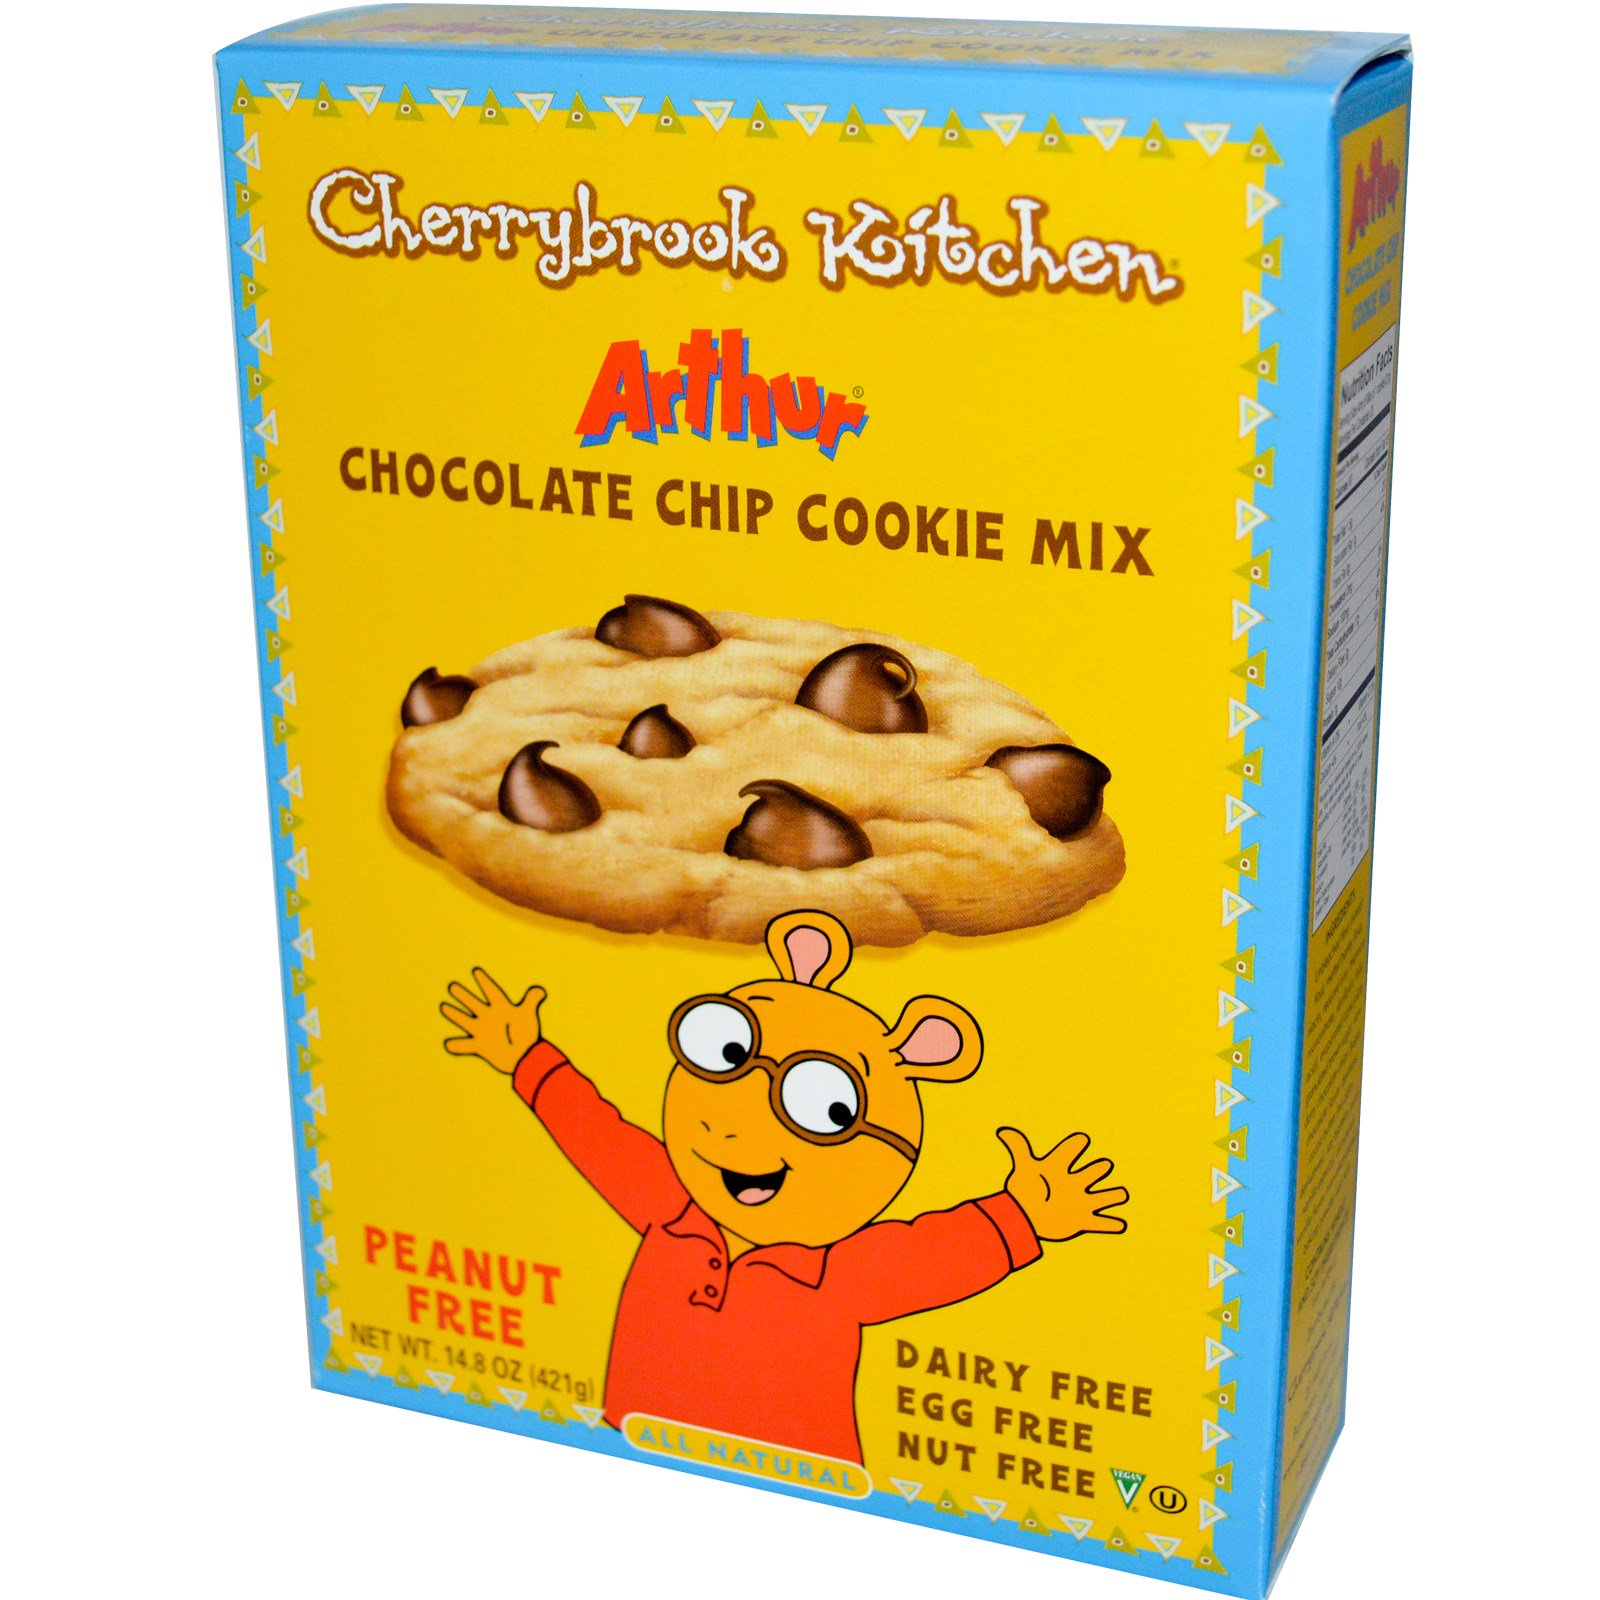 fudge brownie dp cookie mix gluten chocolate free dreams chip boxes ounce com kitchen amazon cherrybrook